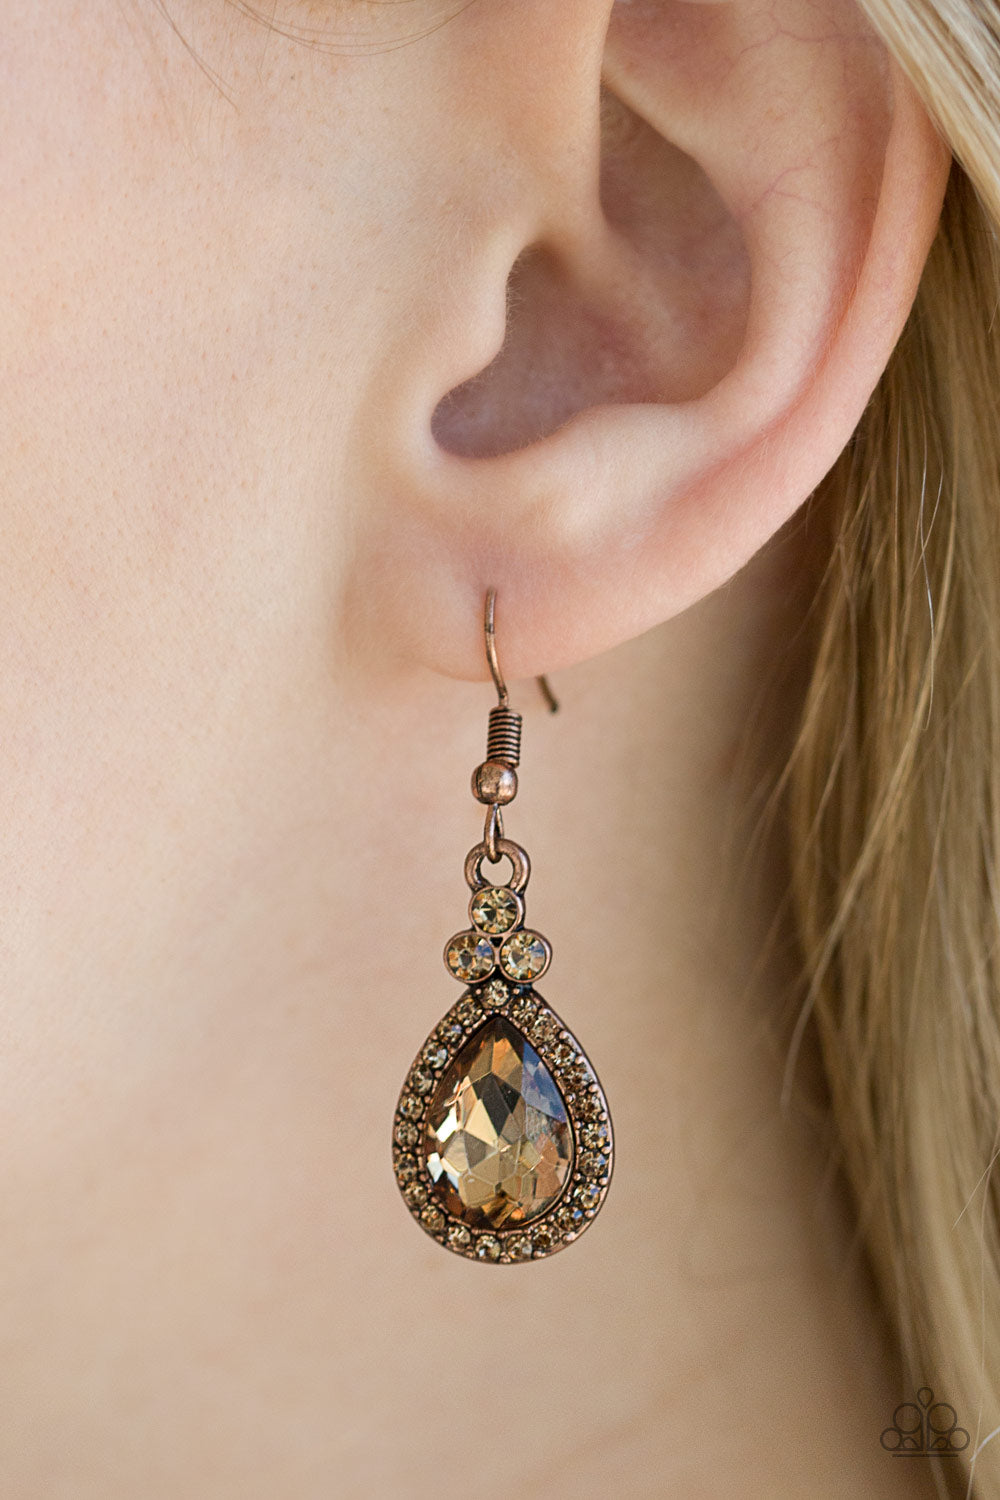 Self-Made Millionaire - Copper Paparazzi Earring - Pink Dragon Jewels